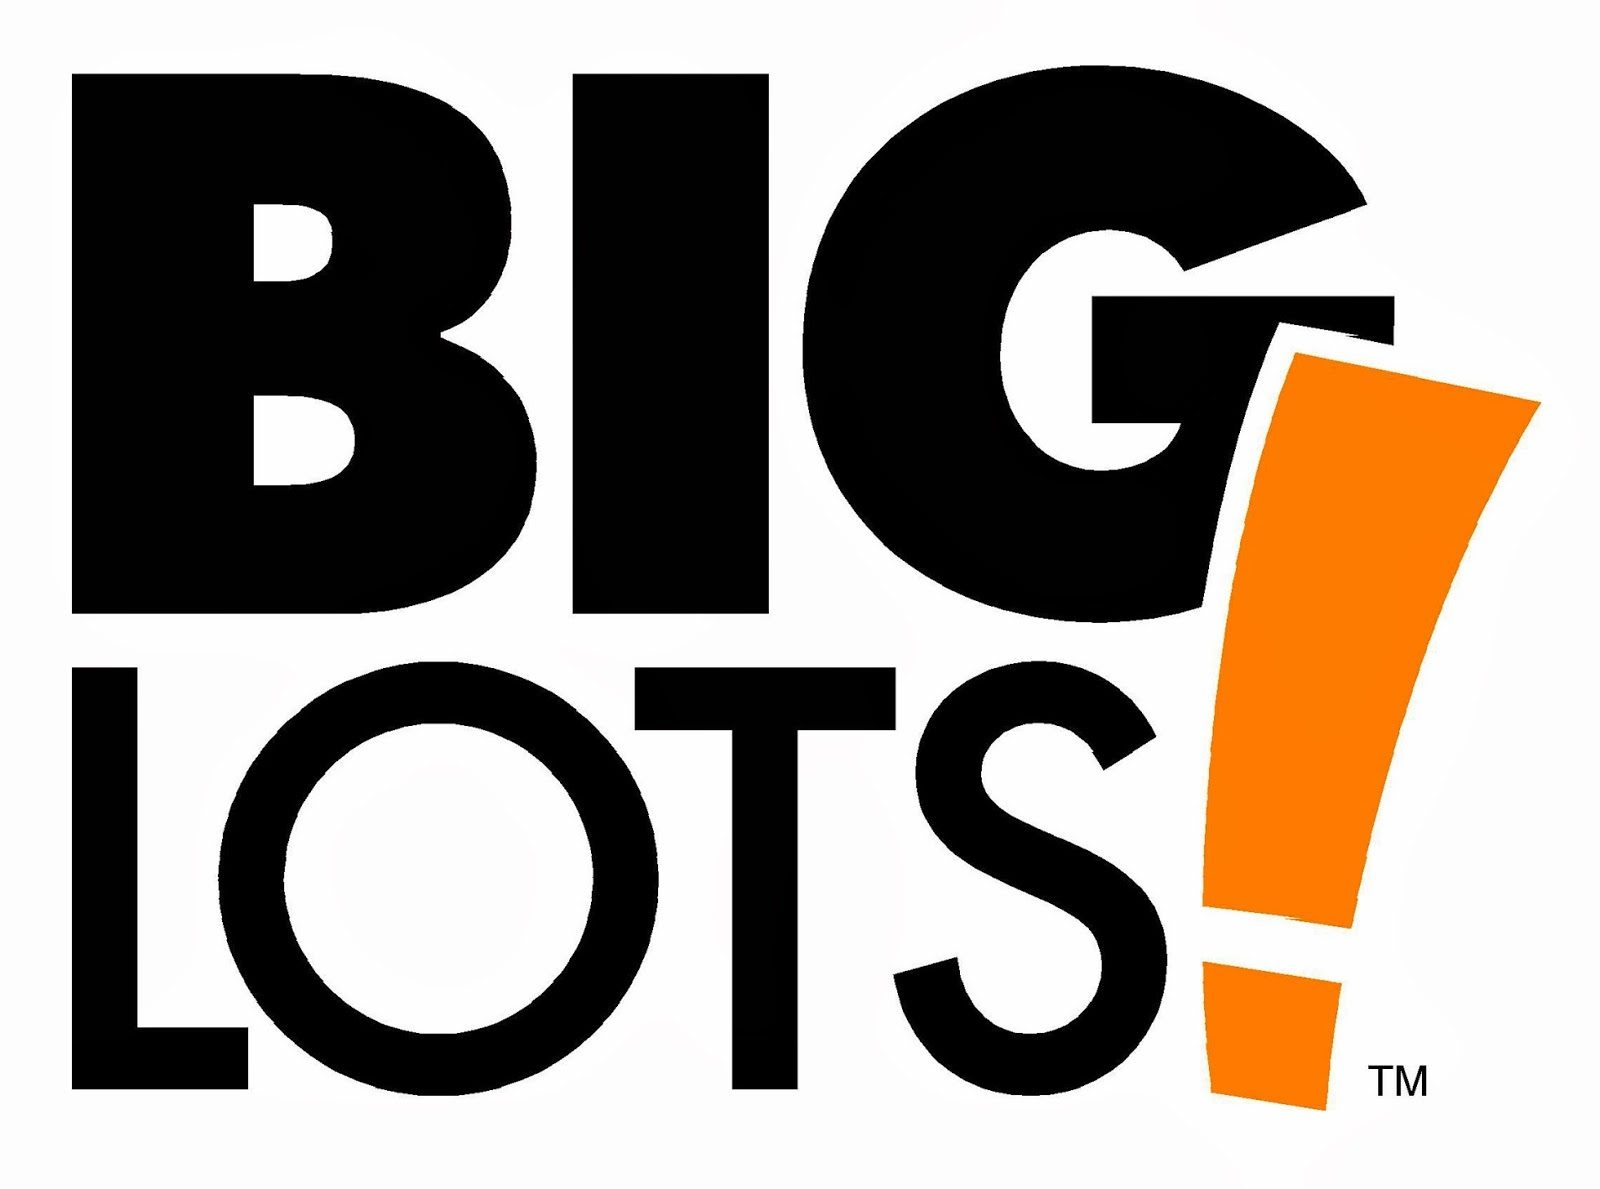 Big Lots $10 Off $50, $20 Off $100, $40 Off $200, OR $100 Off $500 Coupon!